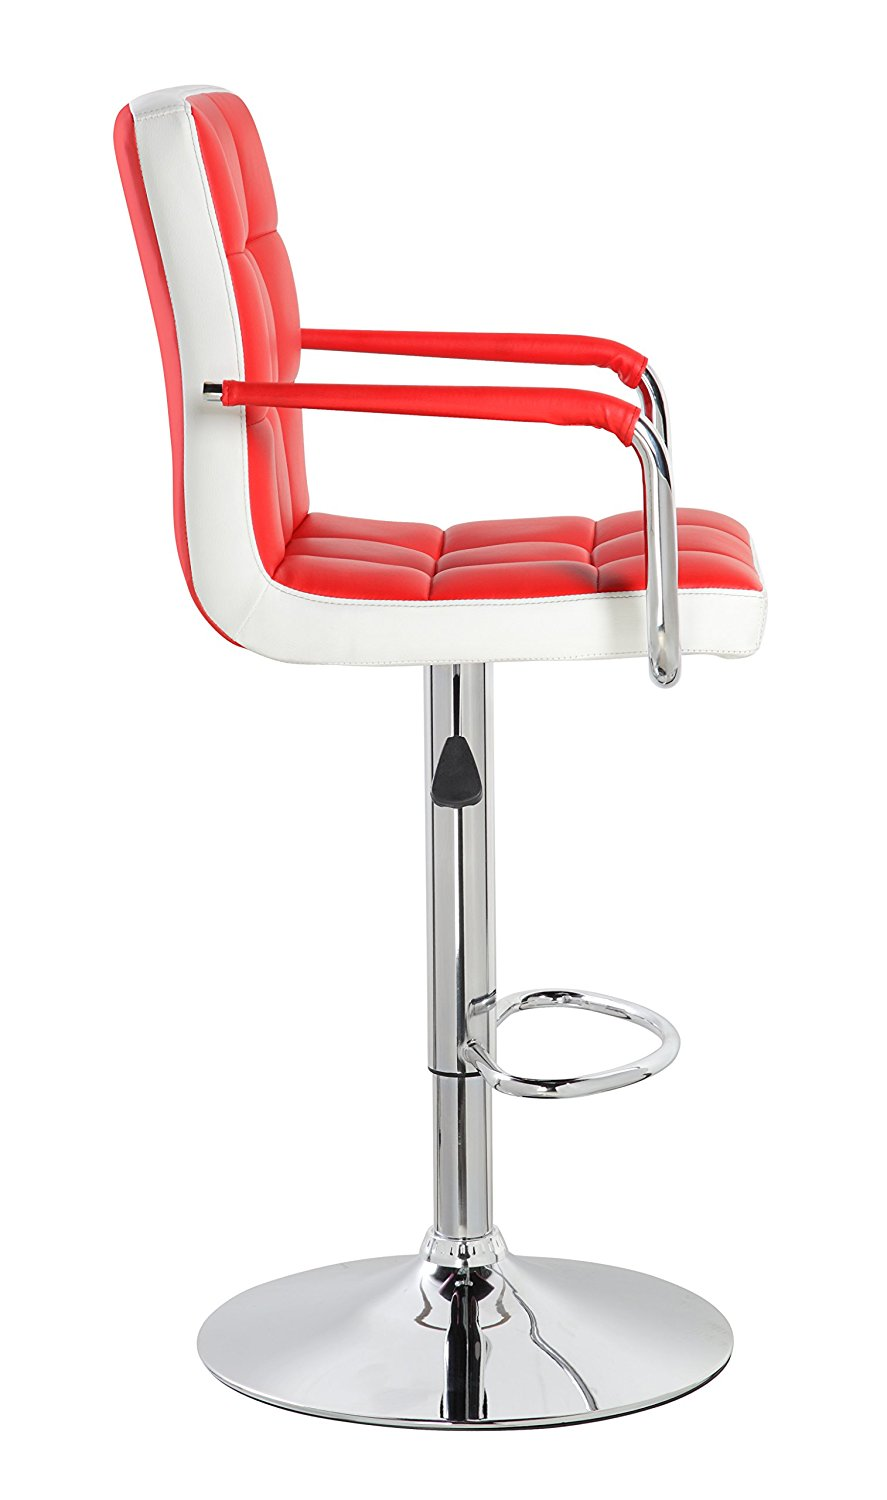 Modern Leather Contemporary Swivel Adjustable Height Bar Stools With Backs And Arms Red Buy Norman Cherner Replica Bar Stool Bar Stool For Heavy People Bar Stool Replacement Seats Product On Alibaba Com